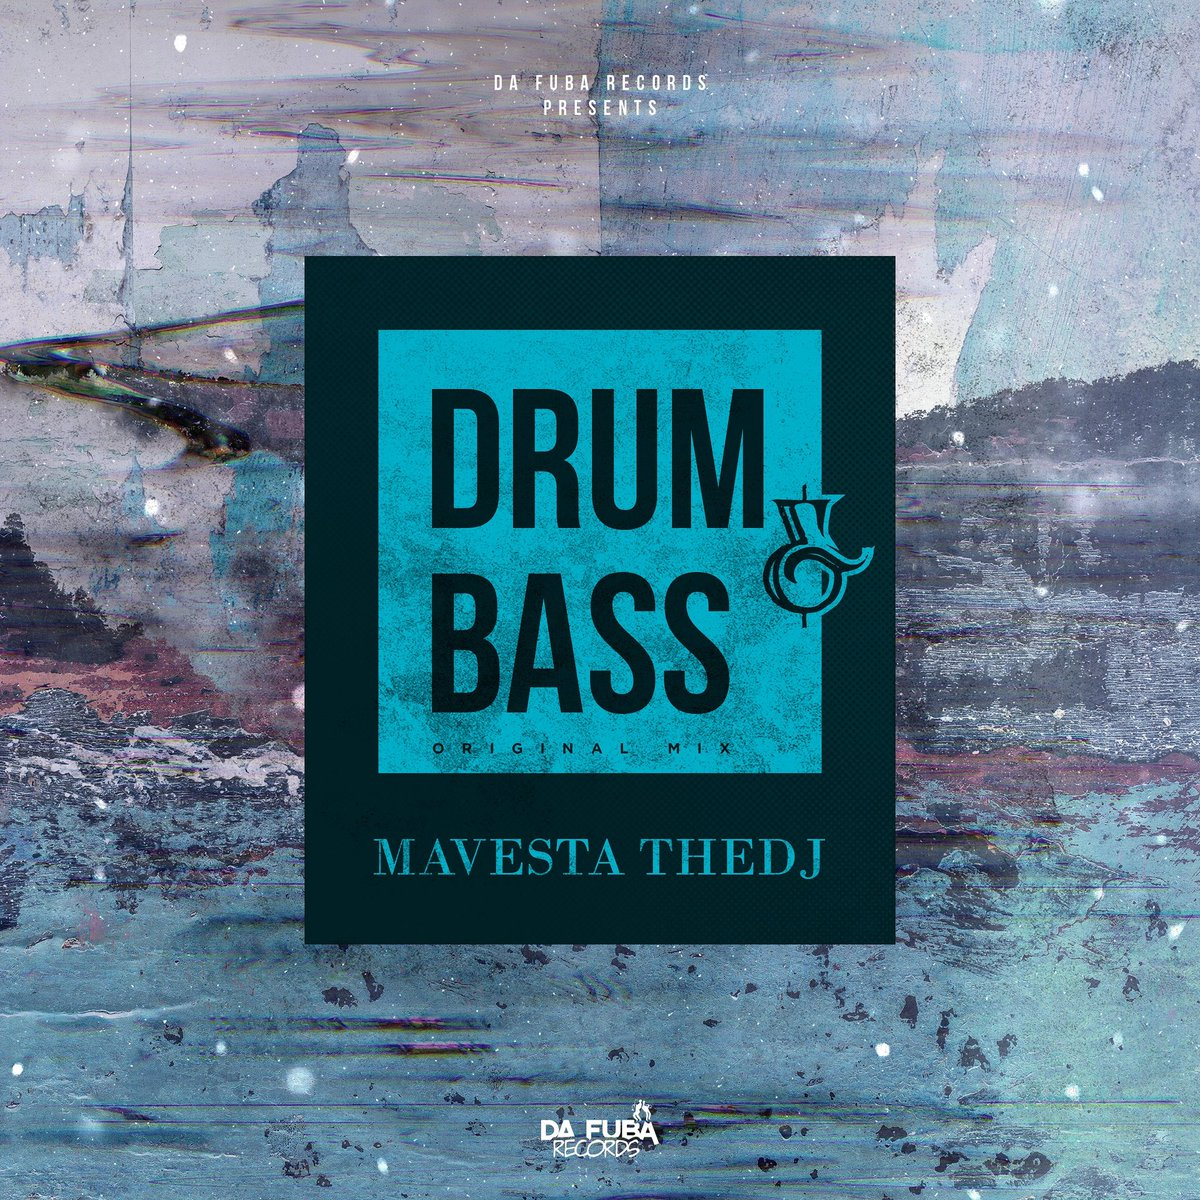 Mavesta TheDJ - Drum & Bass (Original Mix) NOW AVAILABLE For Pre-Sales @traxsource  •Pre-Order🔗: http://tinyurl.com/y2rmo6ck   Exclusive Date: 06.05.2019 All Stores: 20.05.2019  #Afrohouse #electrohouse #HouseMusic #electronics #electronicmusic #dancemusic #AfricanMusic #electronic